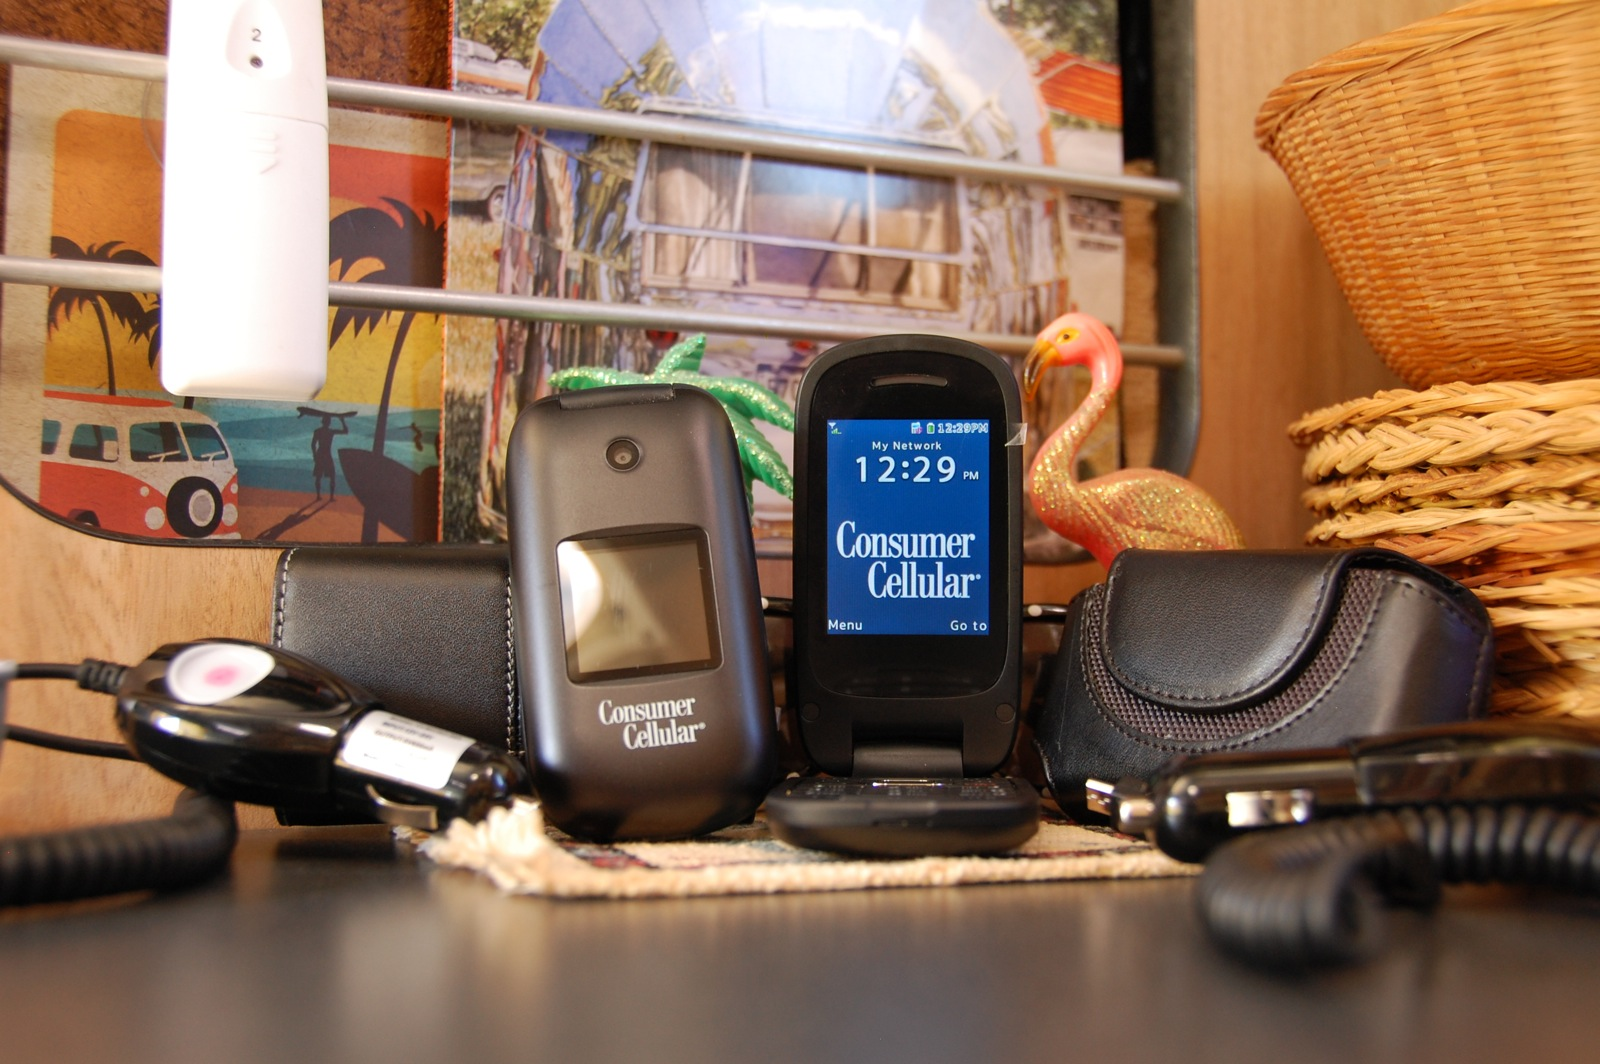 Click image for larger version  Name:DSC_0126 Consumer Cellular in Safari.jpg Views:144 Size:397.3 KB ID:222879